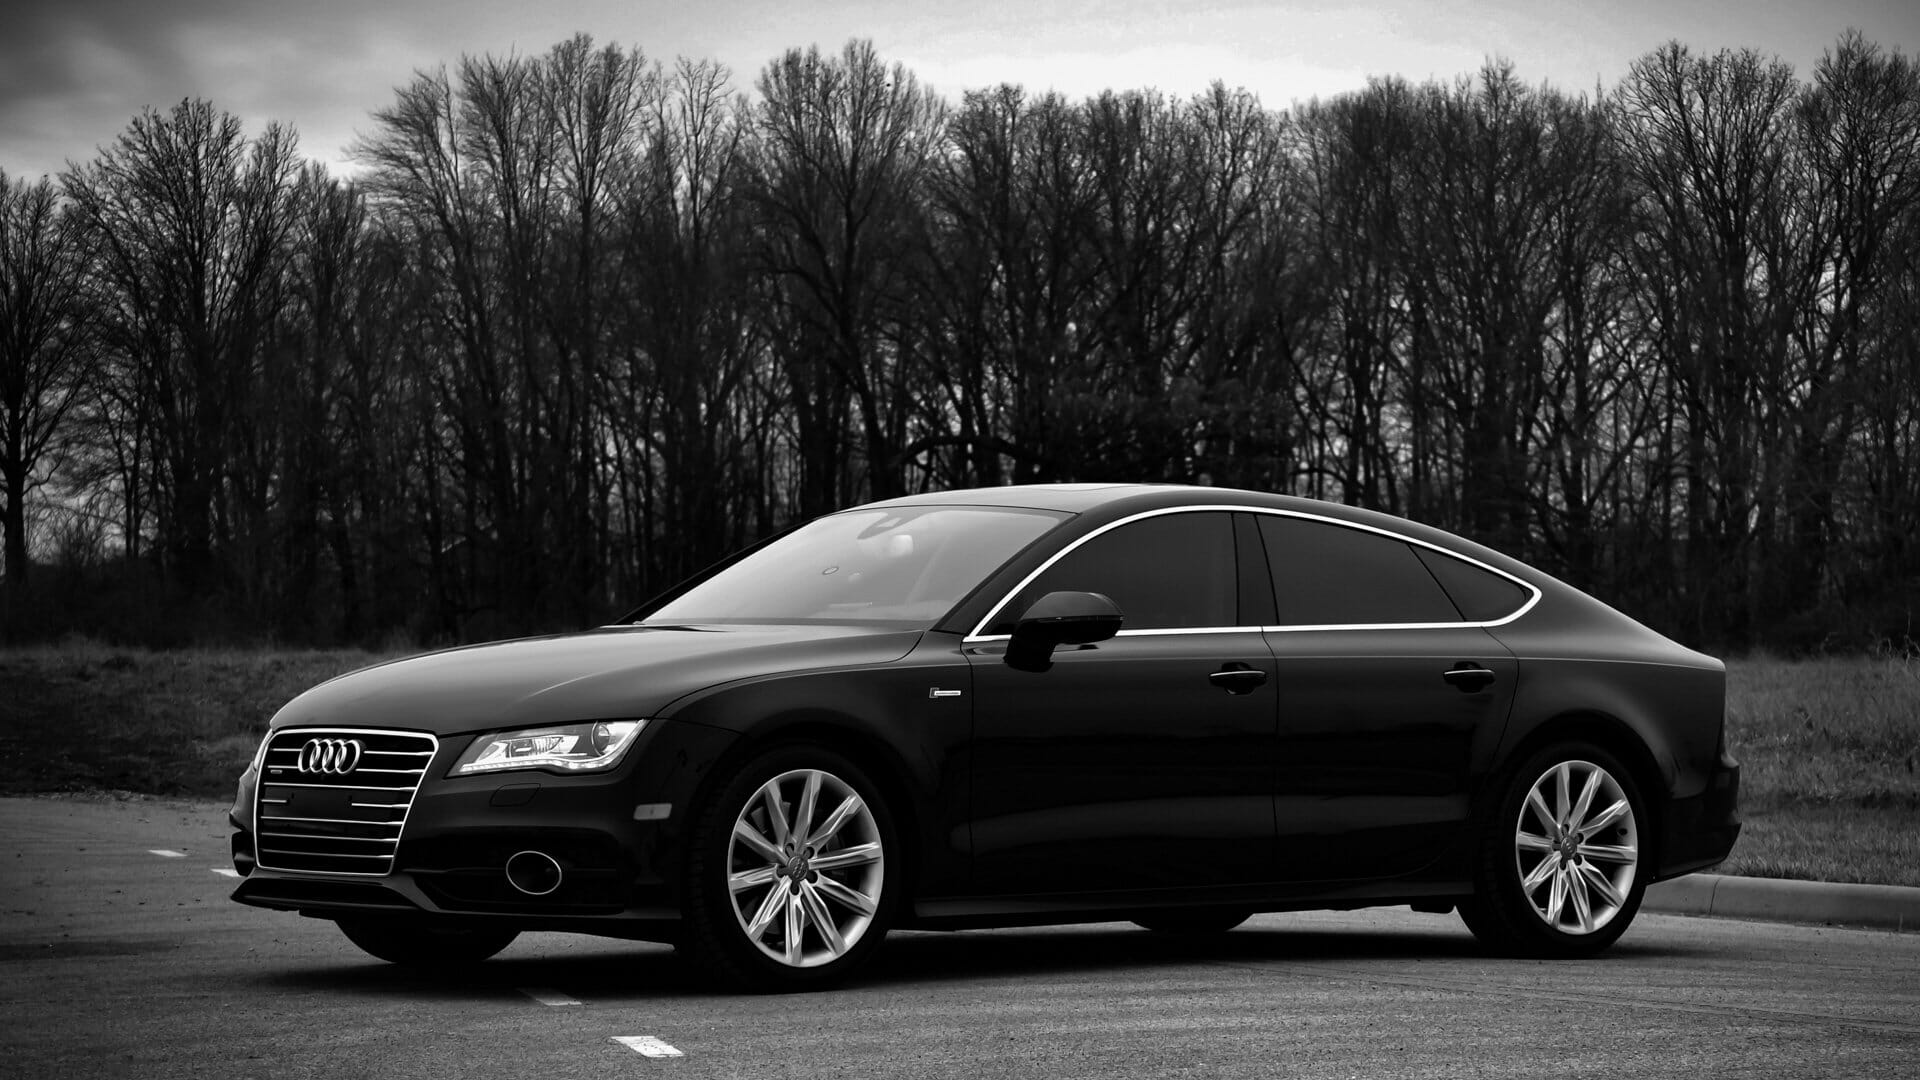 Audi A7 Subwoofer Audio Upgrade Daniel Vreeman